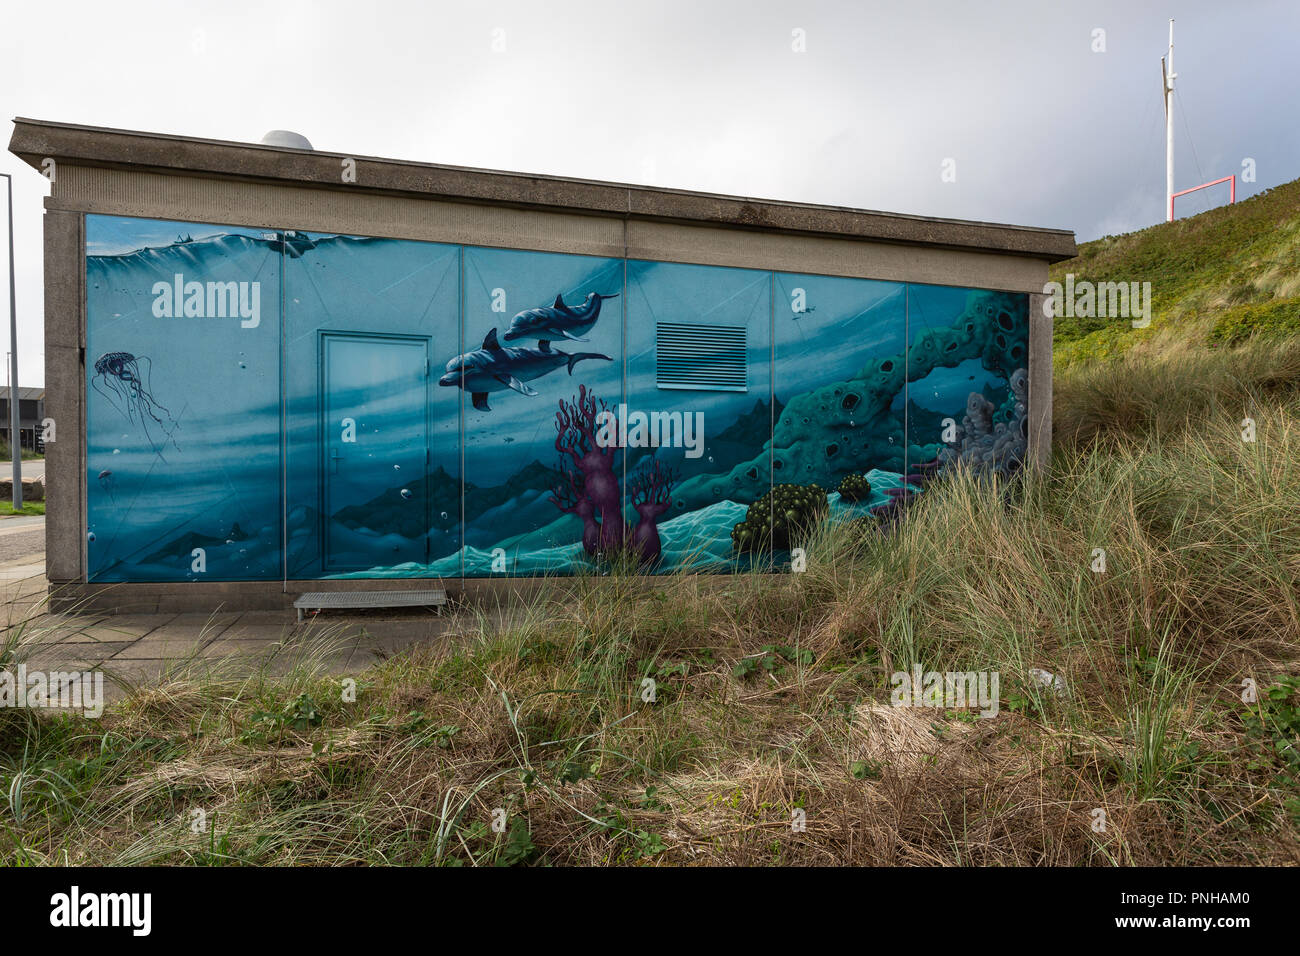 Street Art artists have decorated buildings and walls with grafitti art in Hvide Sande, Denmark. Street Art Künstler haben in Hvide Sande, Dänemark, G - Stock Image